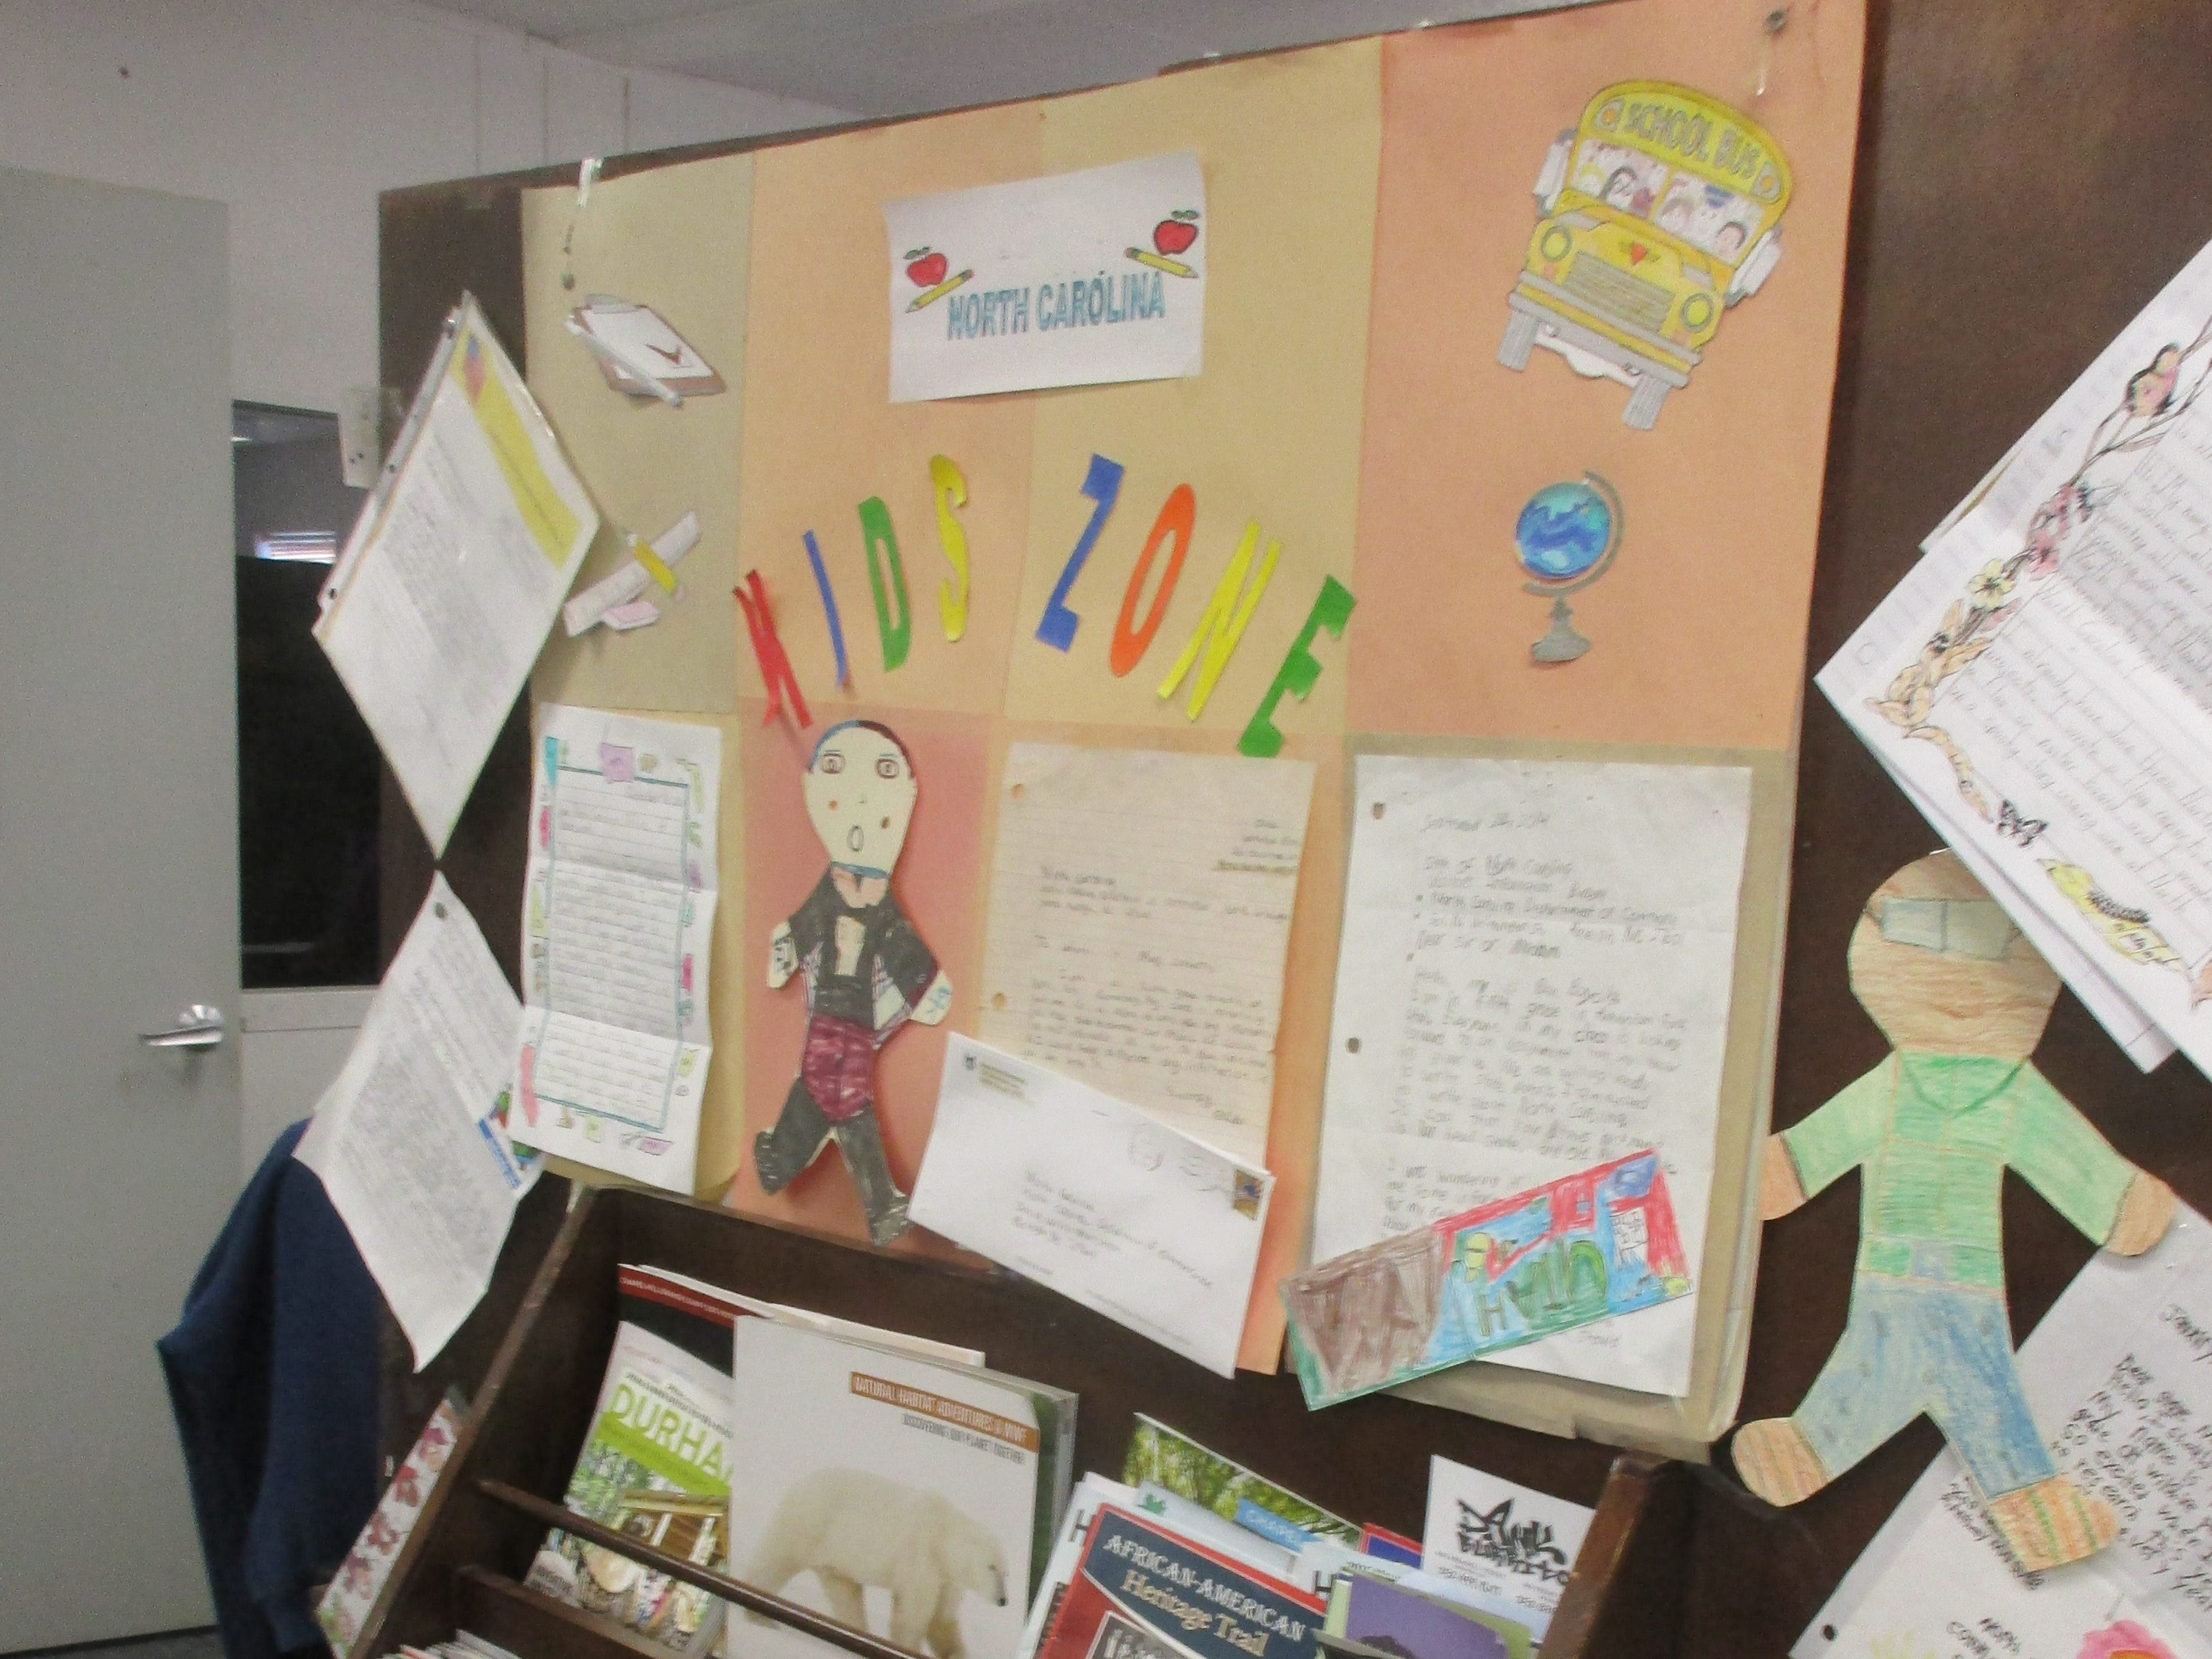 The room also holds racks of tourist brochures; at the end of the computer bank is a display of letters from children in places like Salinas, California, or the grade-schoolers in North Pole, Alaska, seeking mailed information.